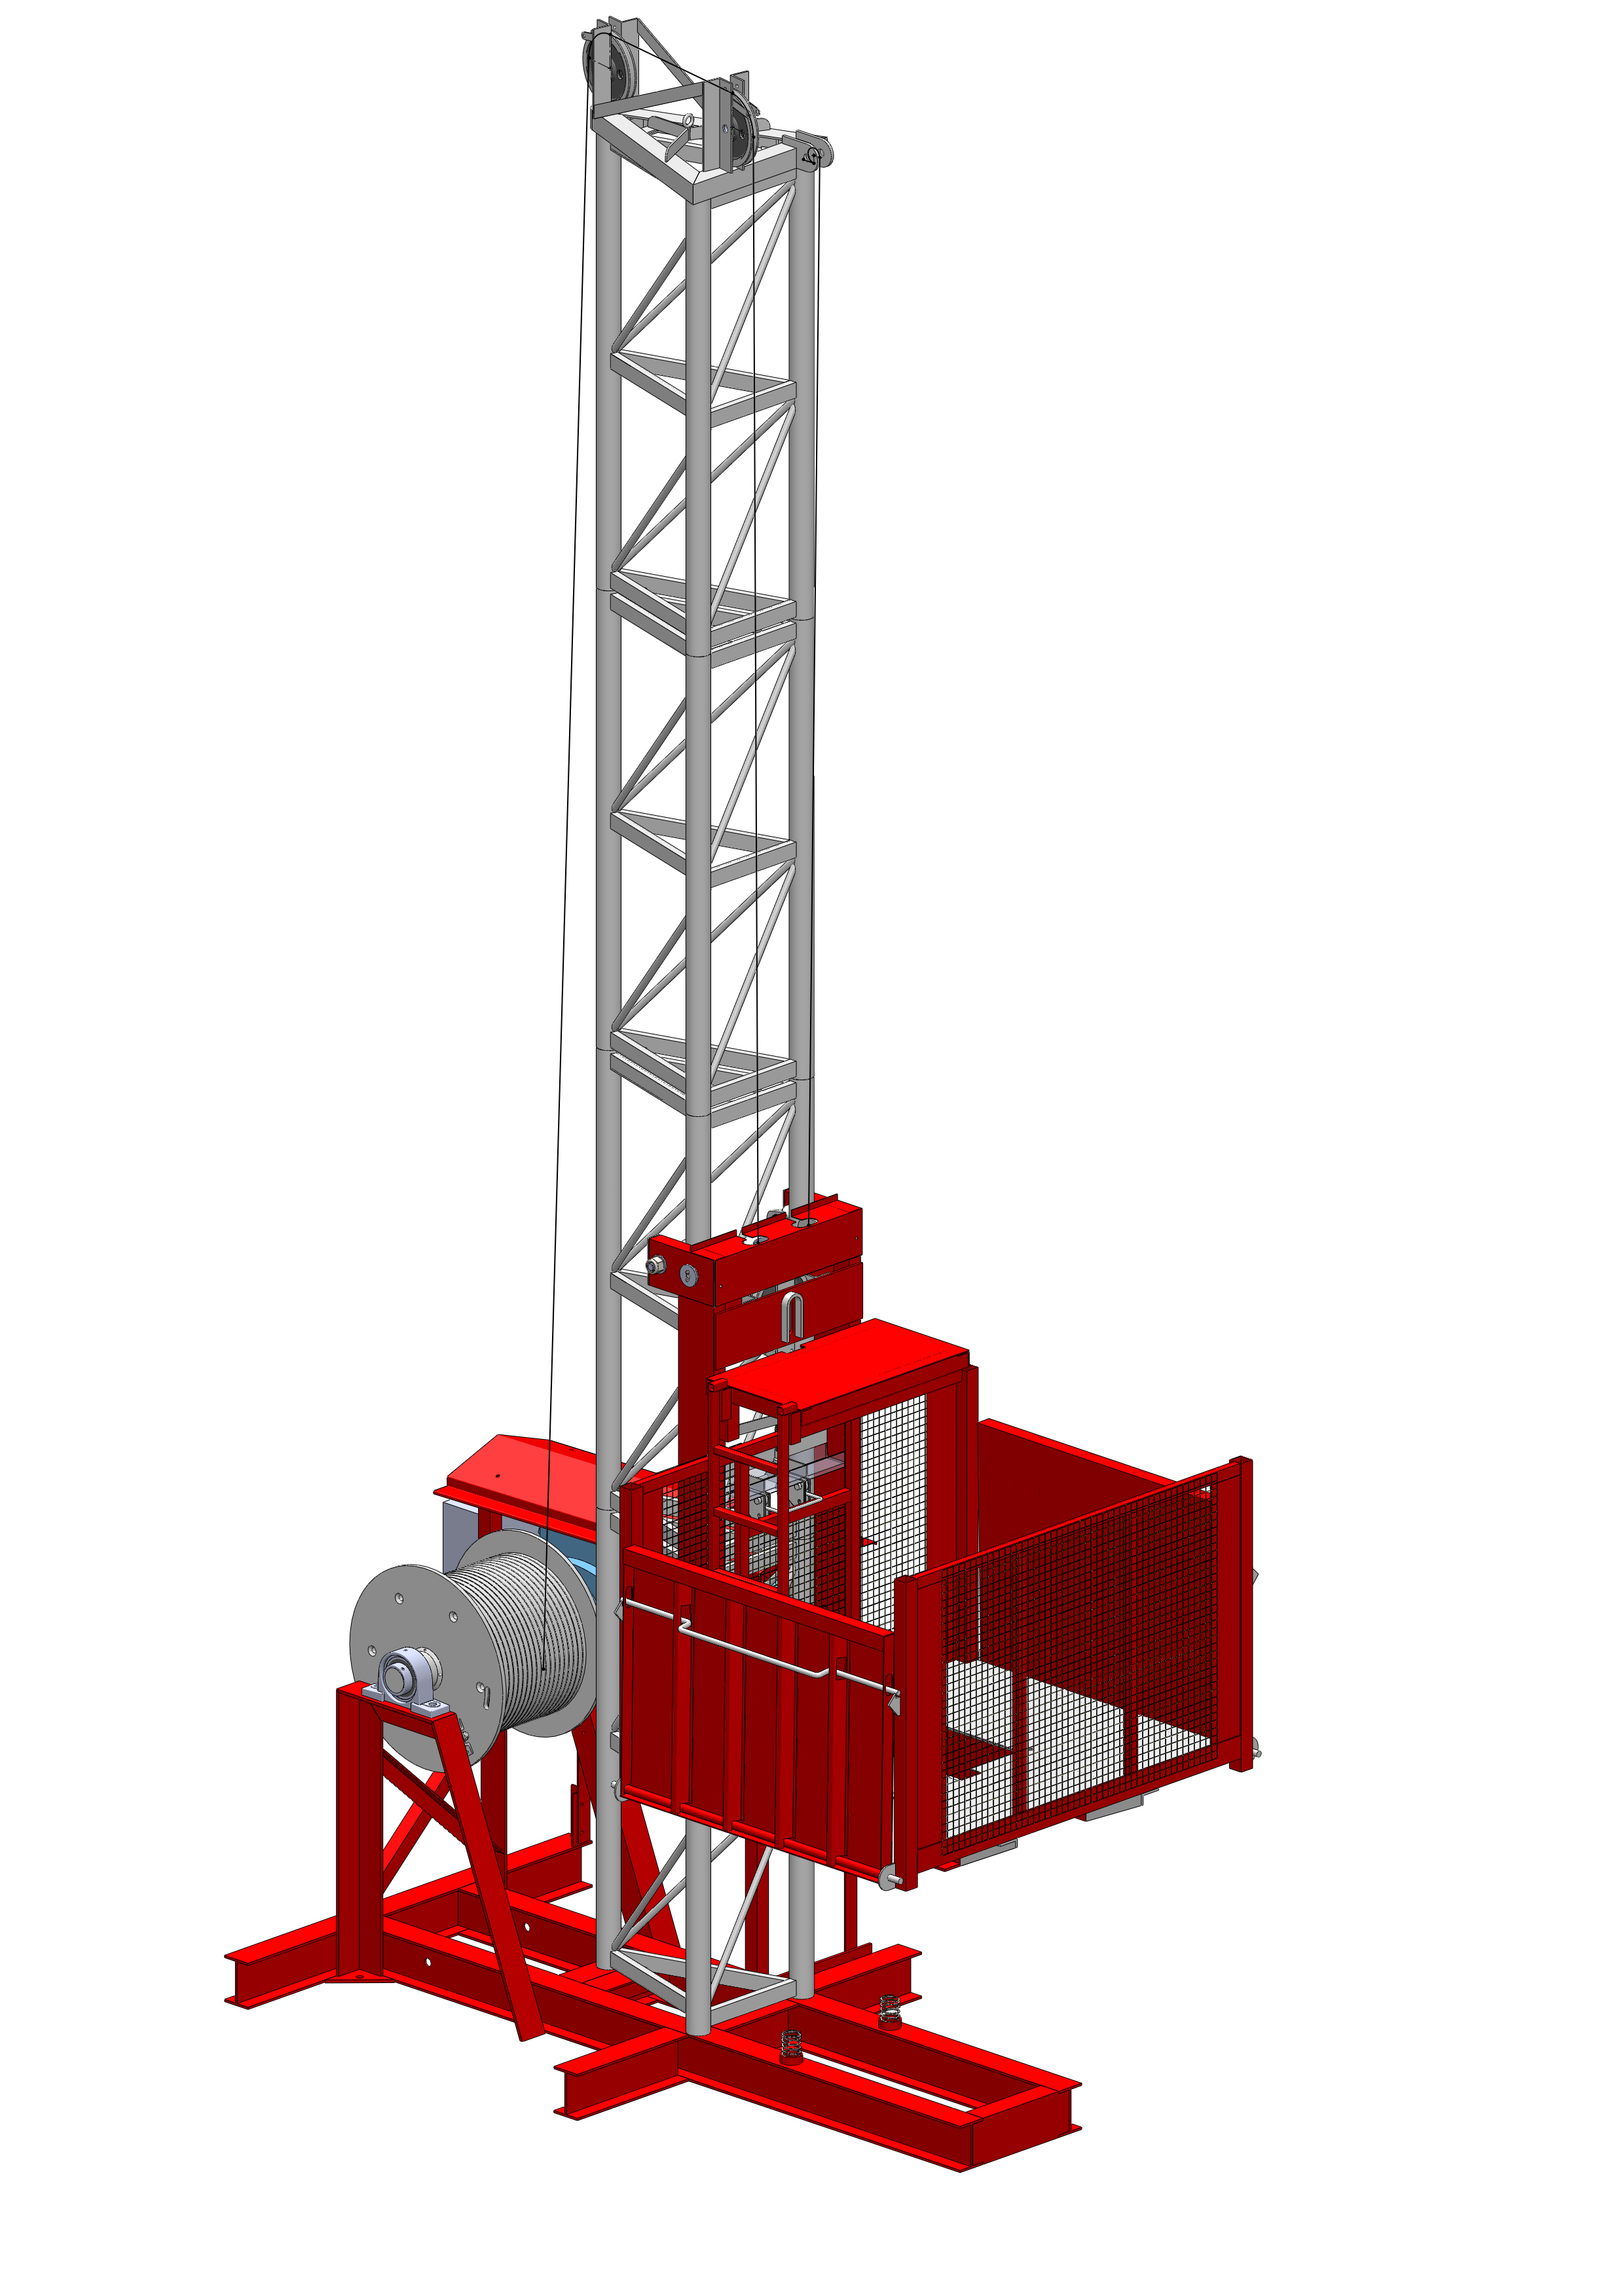 Wickham GR1000-2 material hoist is a highly efficient